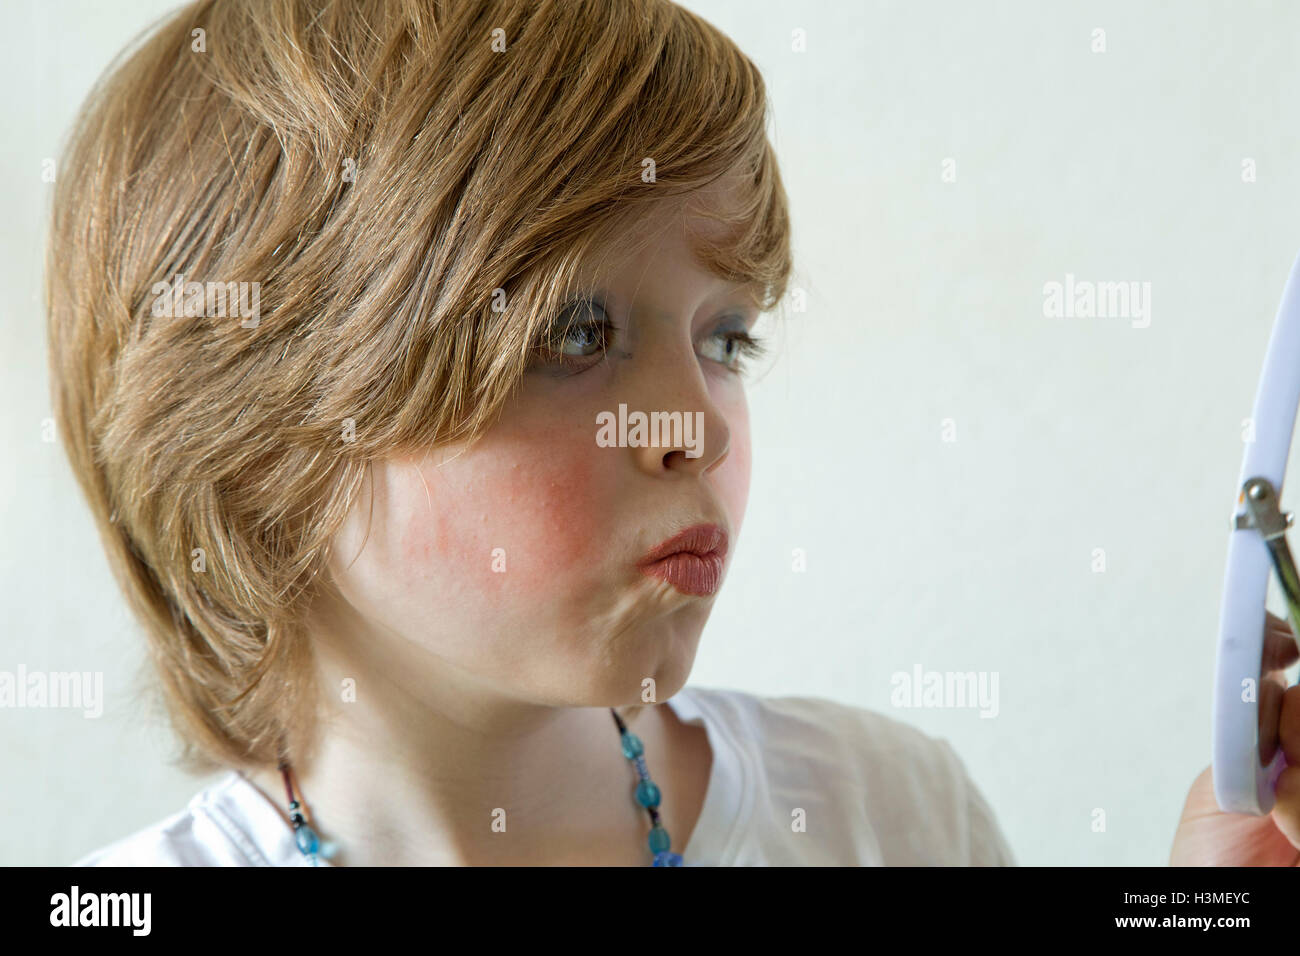 Young Boy Putting Makeup On Pretending To Be A Girl Stock Photo Royalty Free Image 122767328 ...